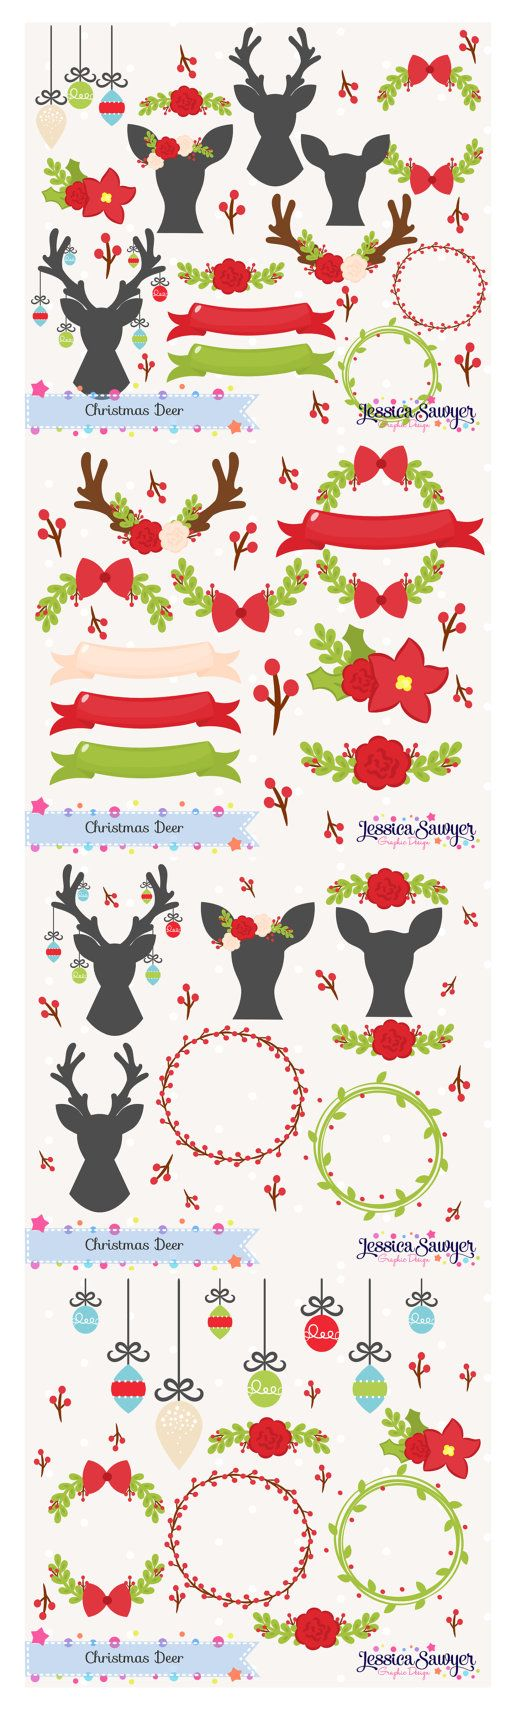 Christmas Clipart and Deer Silhouettes